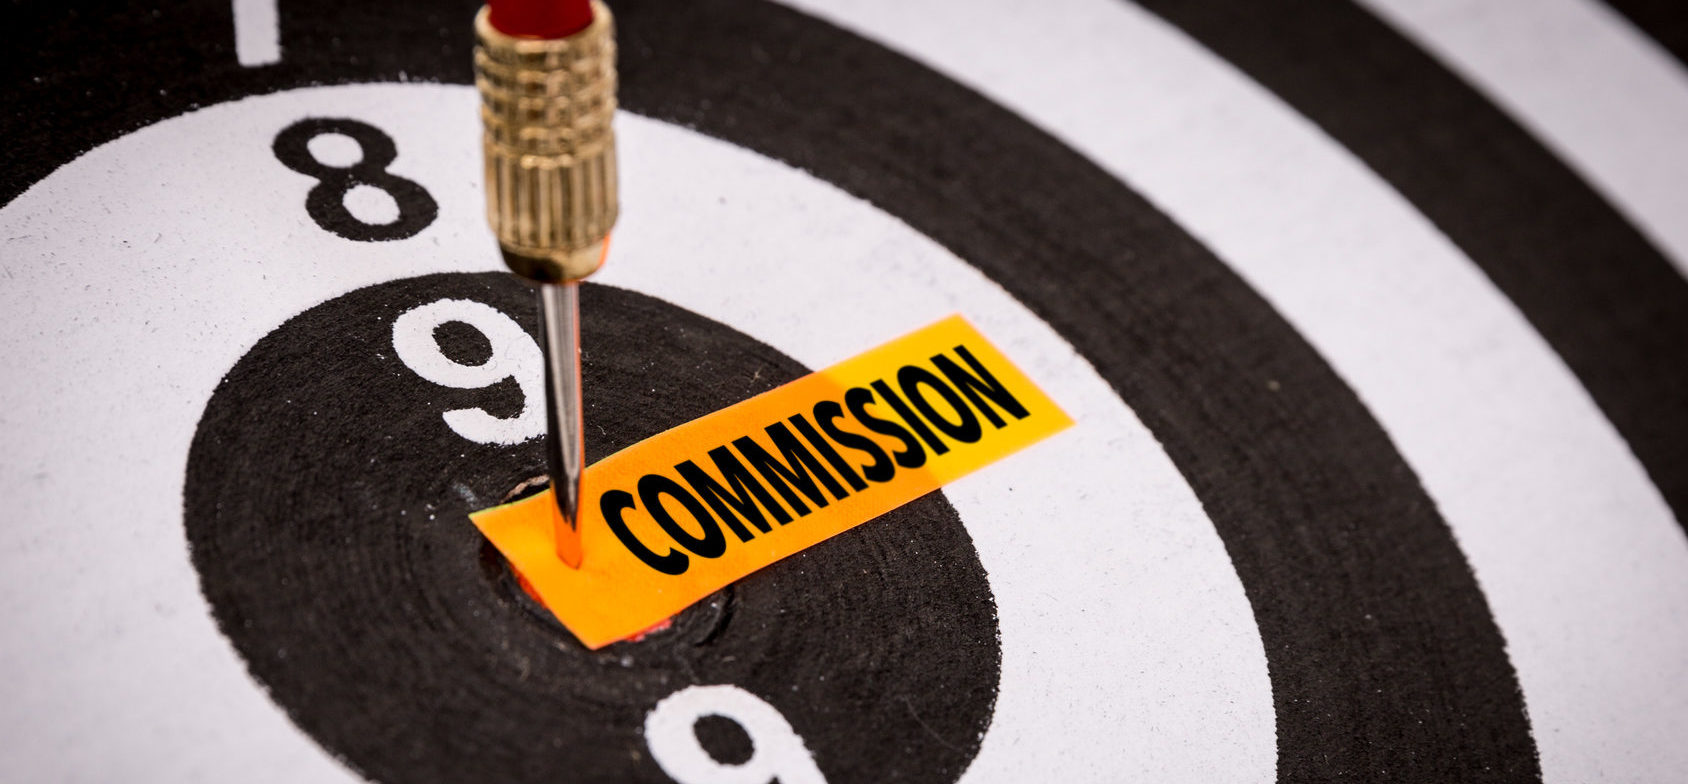 Designing Sales Commission System for your Staff